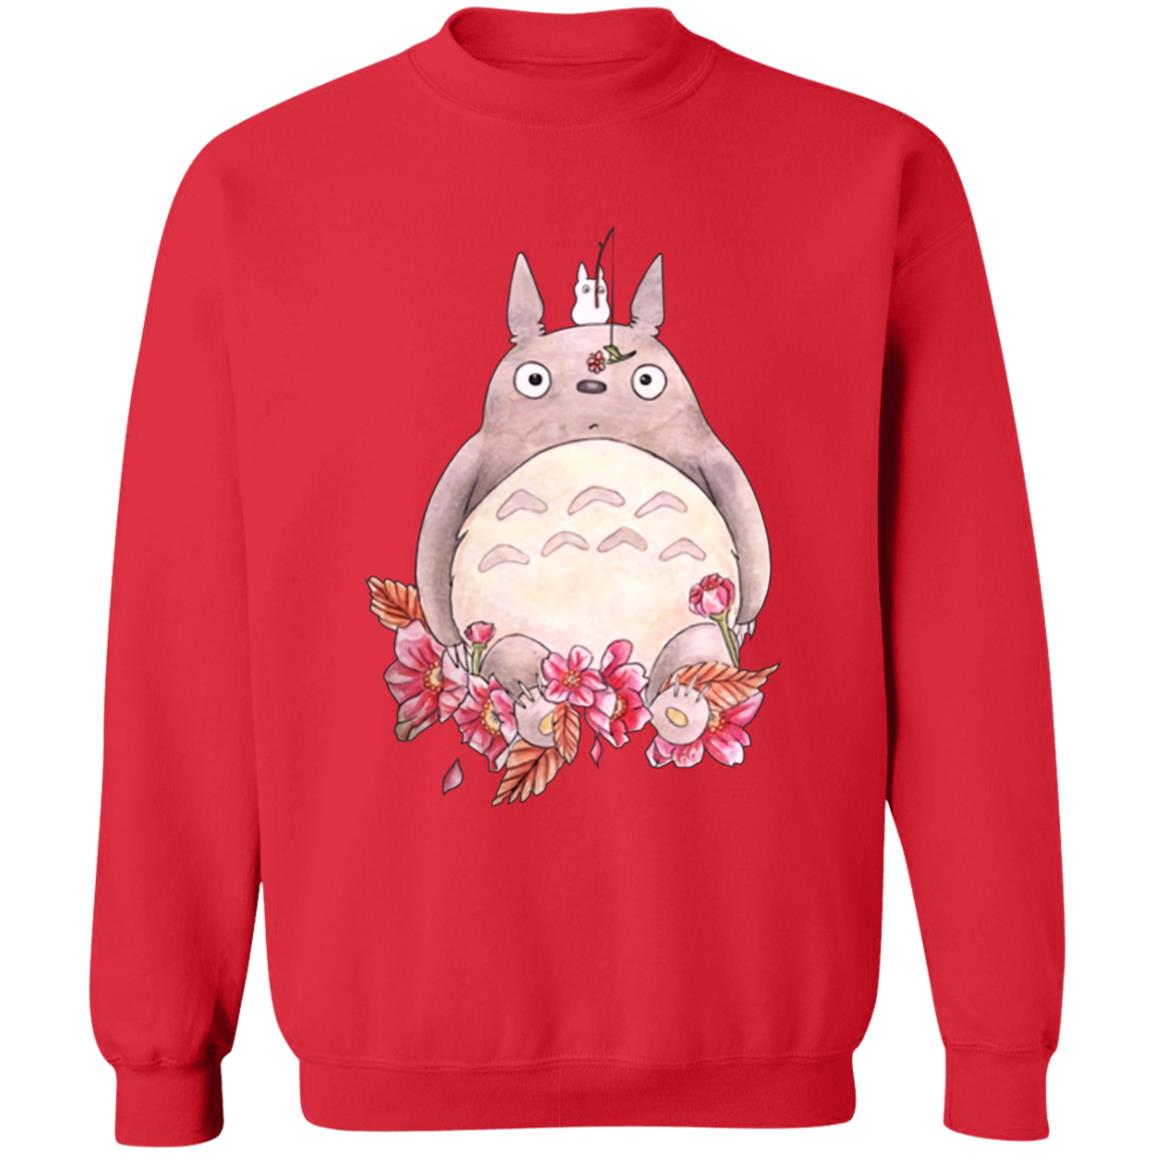 Totoro – Flower Fishing Sweatshirt